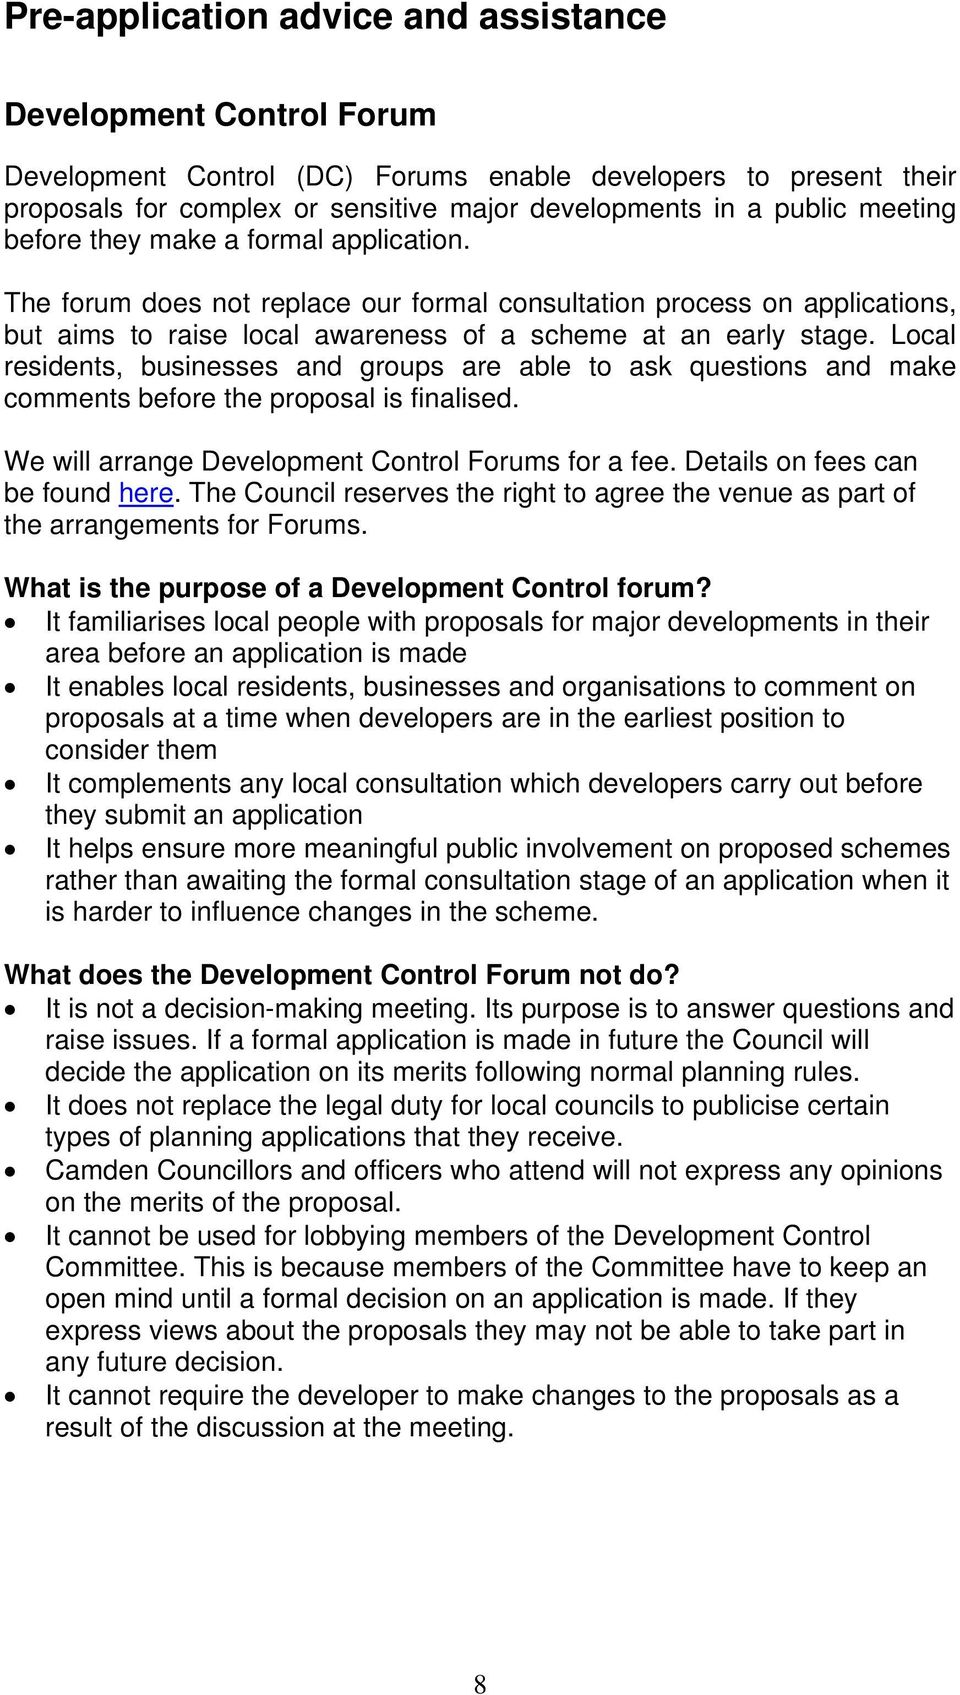 Local residents, businesses and groups are able to ask questions and make comments before the proposal is finalised. We will arrange Development Control Forums for a fee.